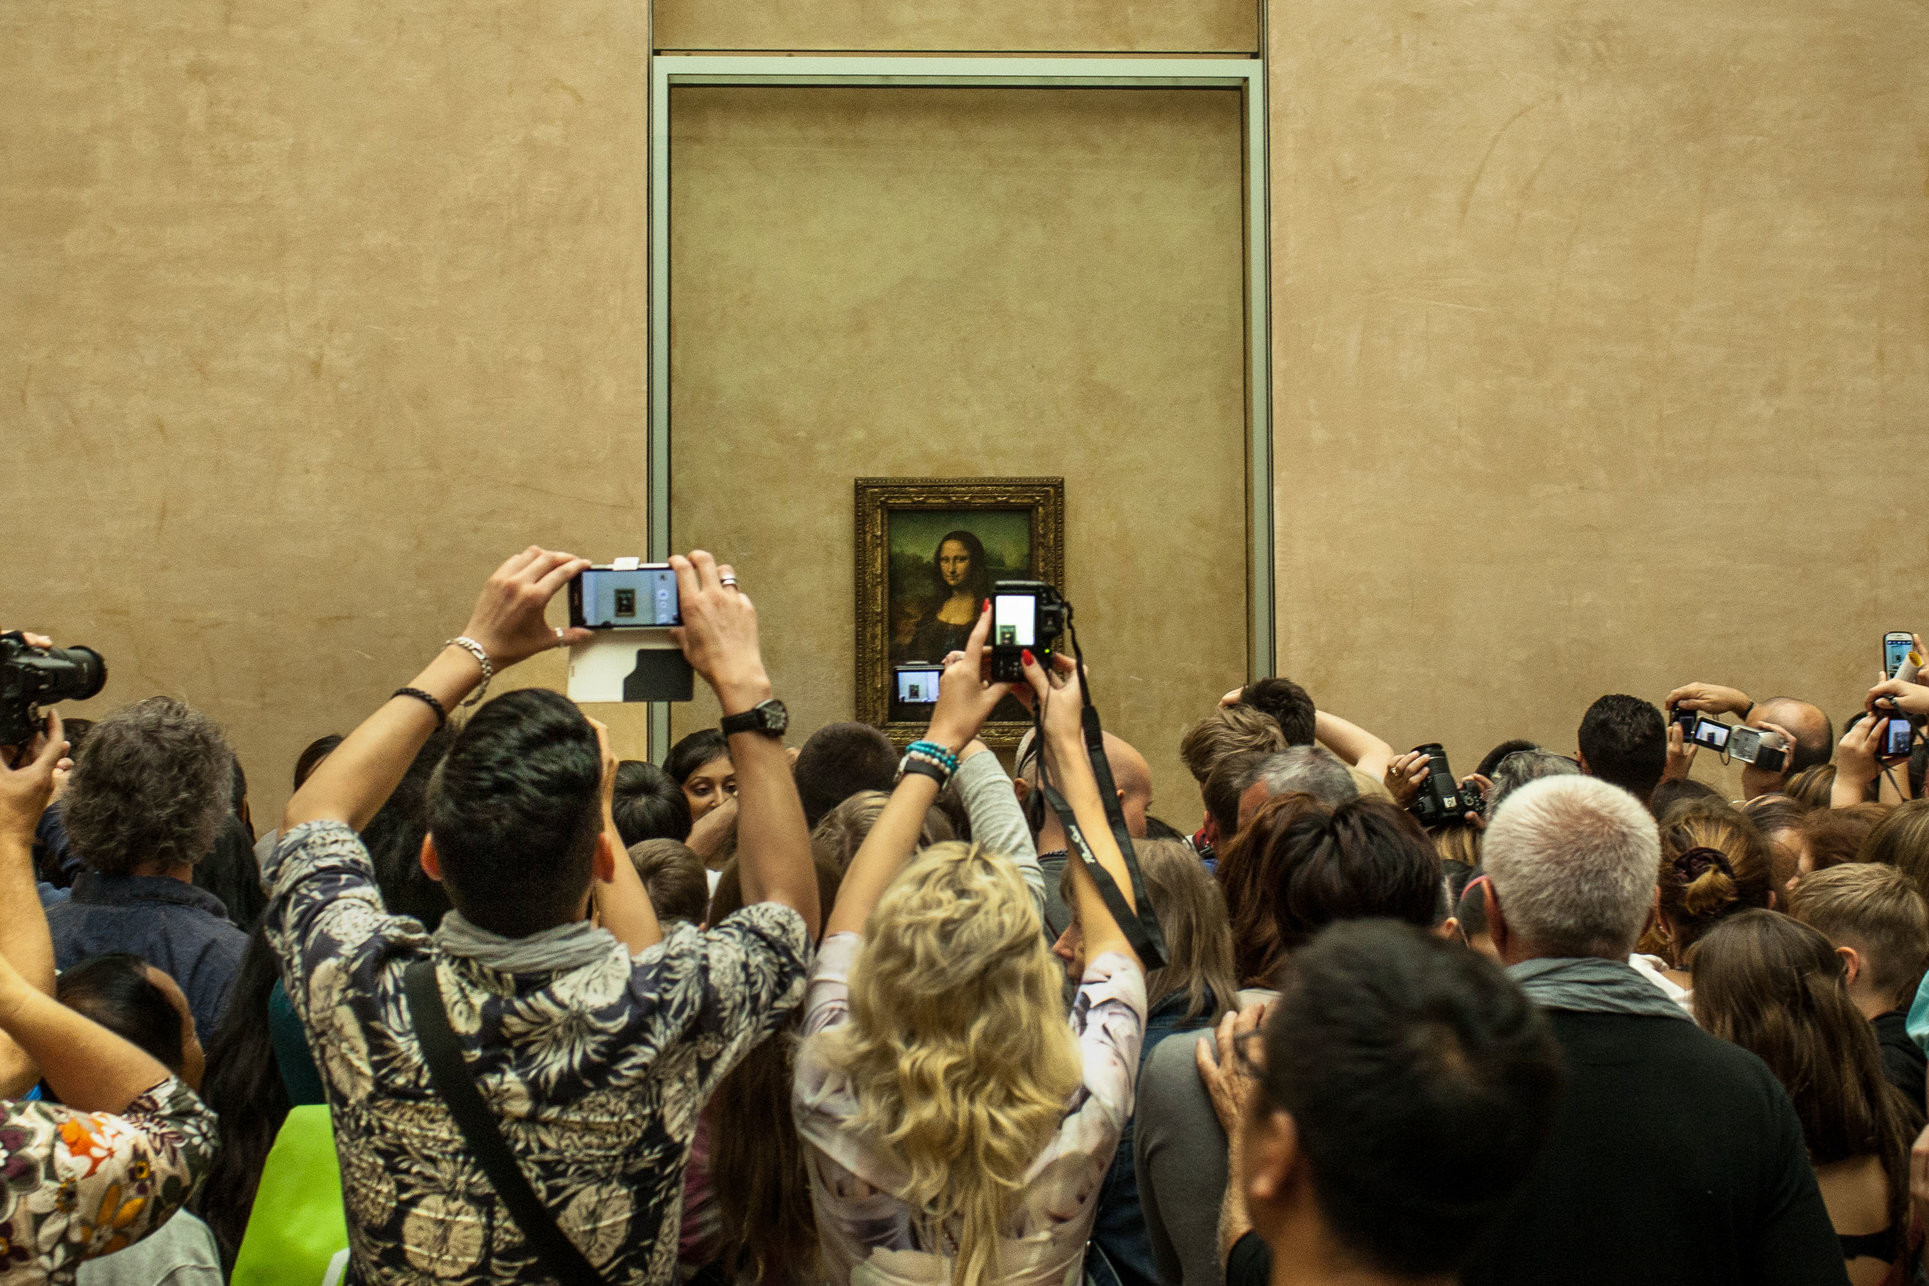 Has The Surge Of Visitors to Museums & Galleries Reached A Tipping Point?, Crowds around Da Vinci's Mona Lisa at the Louvre, Paris. Image © Guia Besana